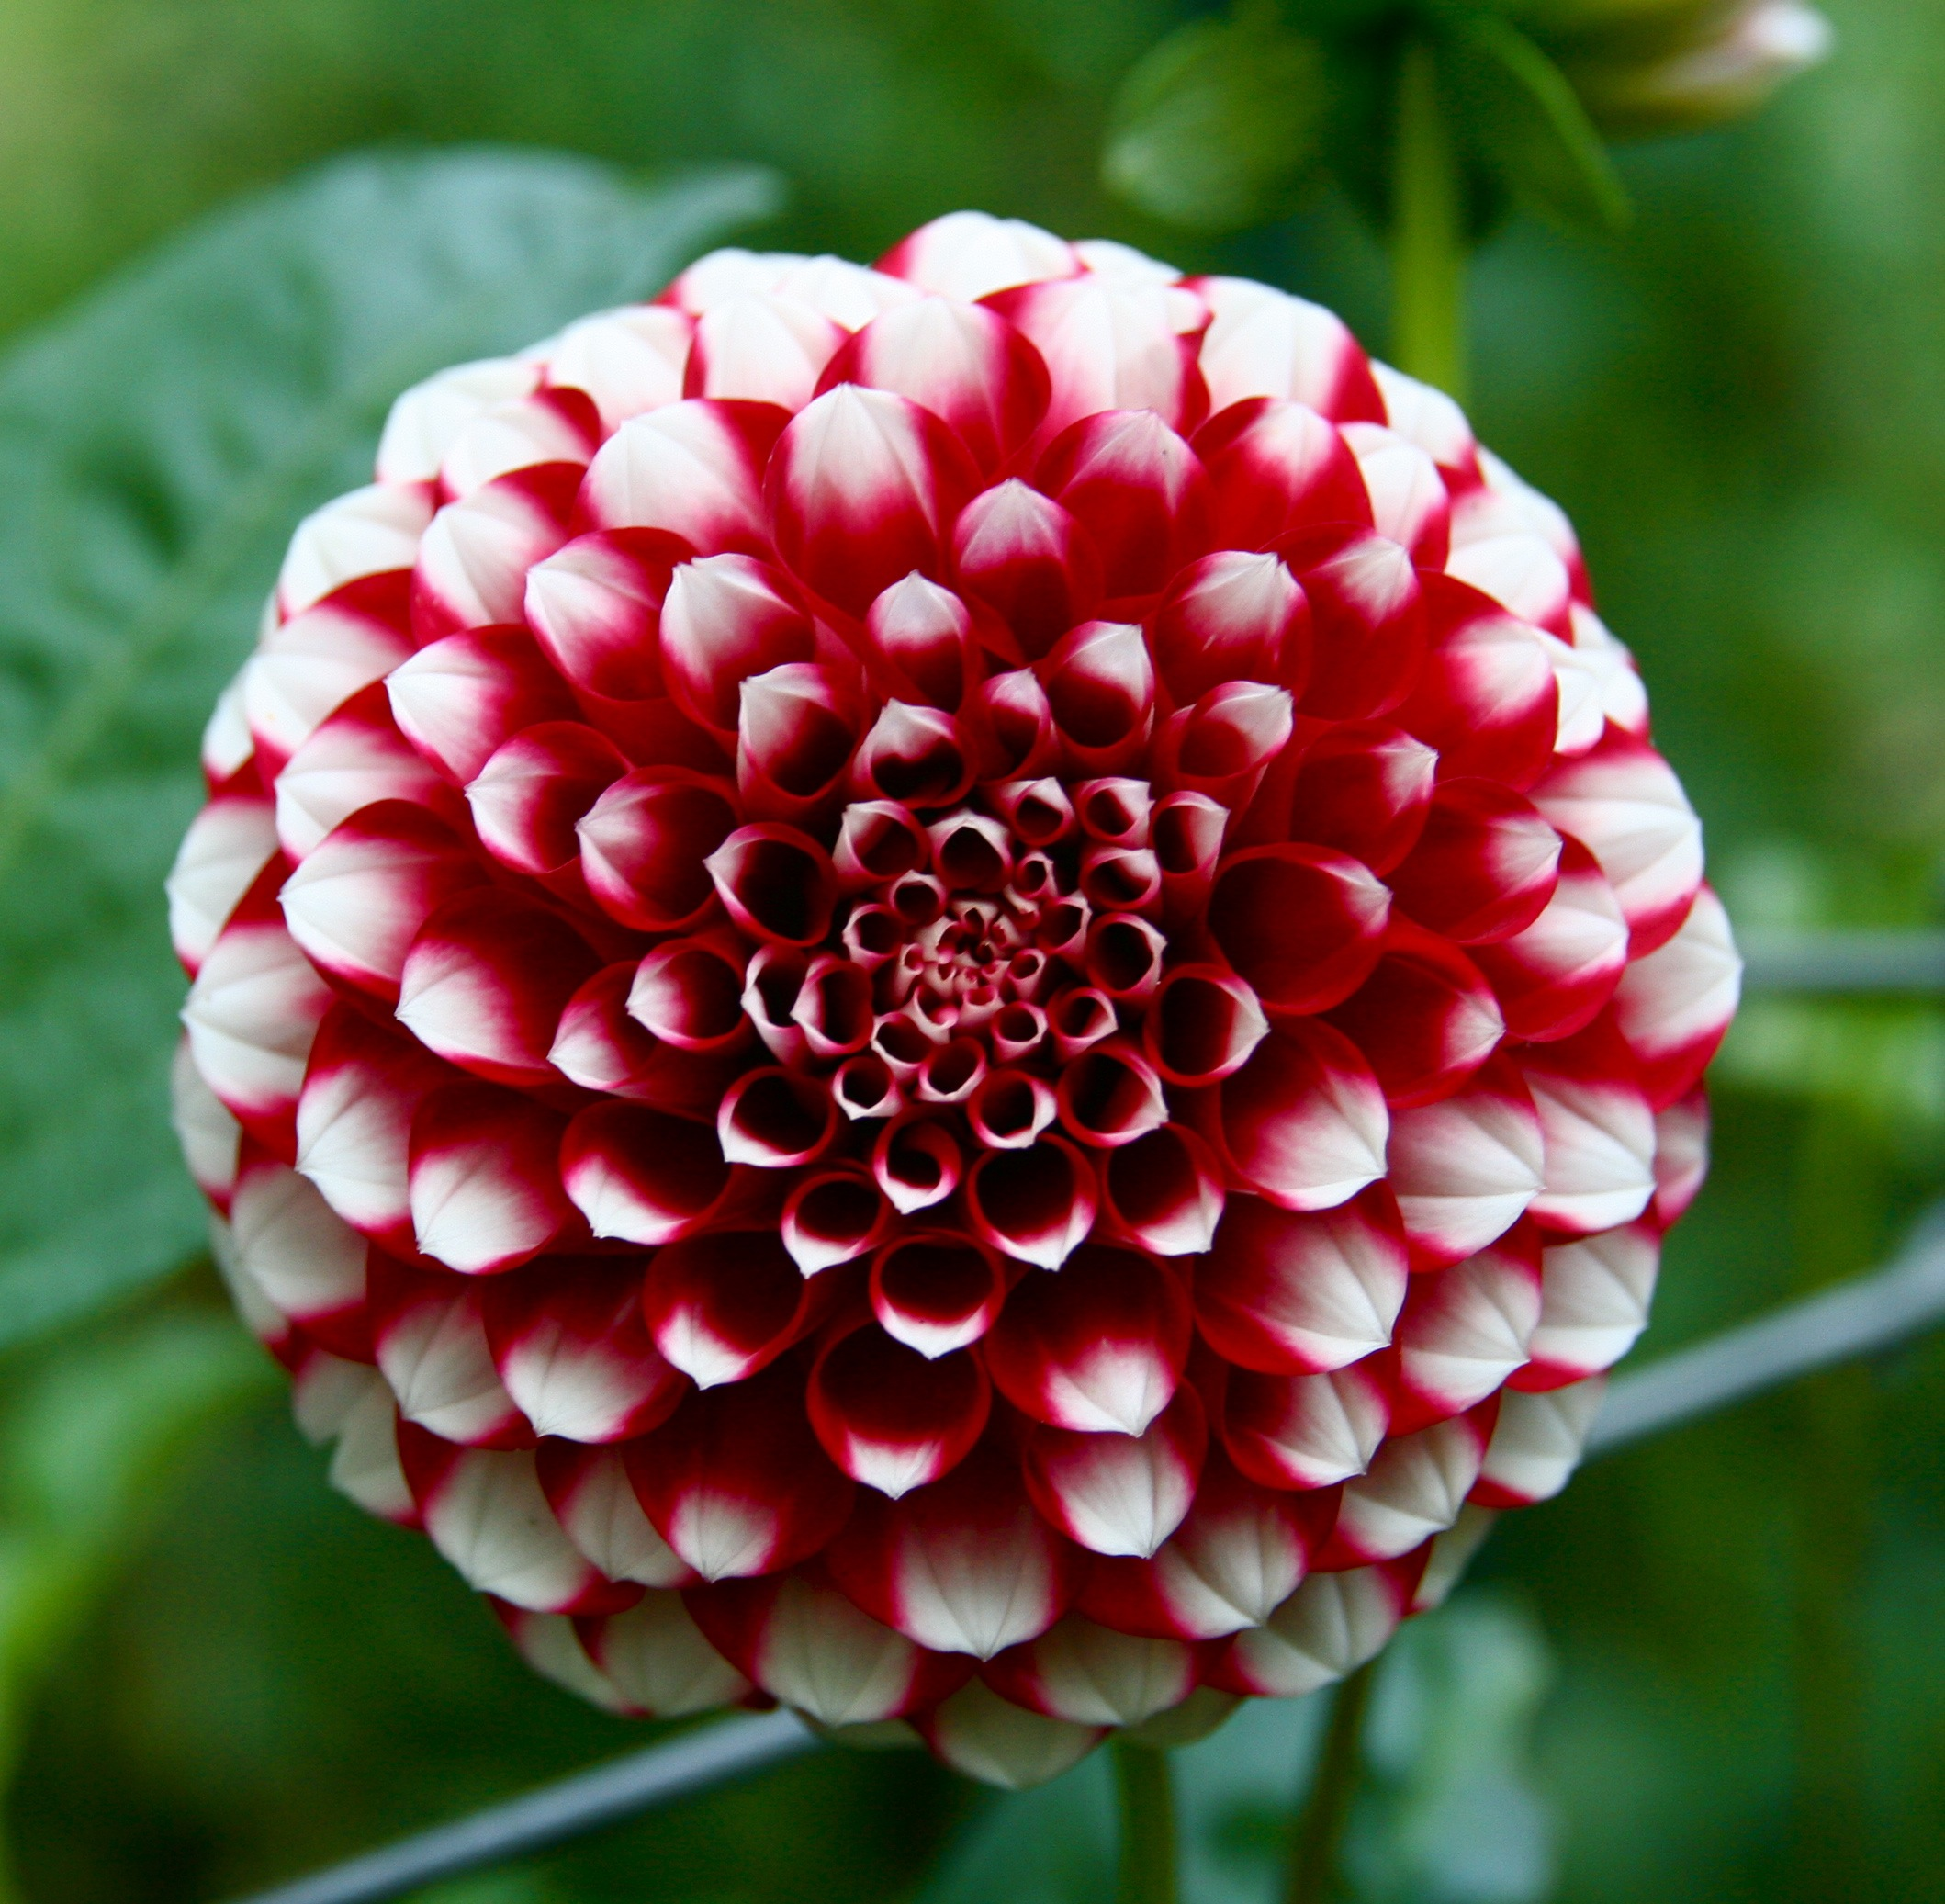 File:Big red and white flower.jpg - Wikimedia Commons